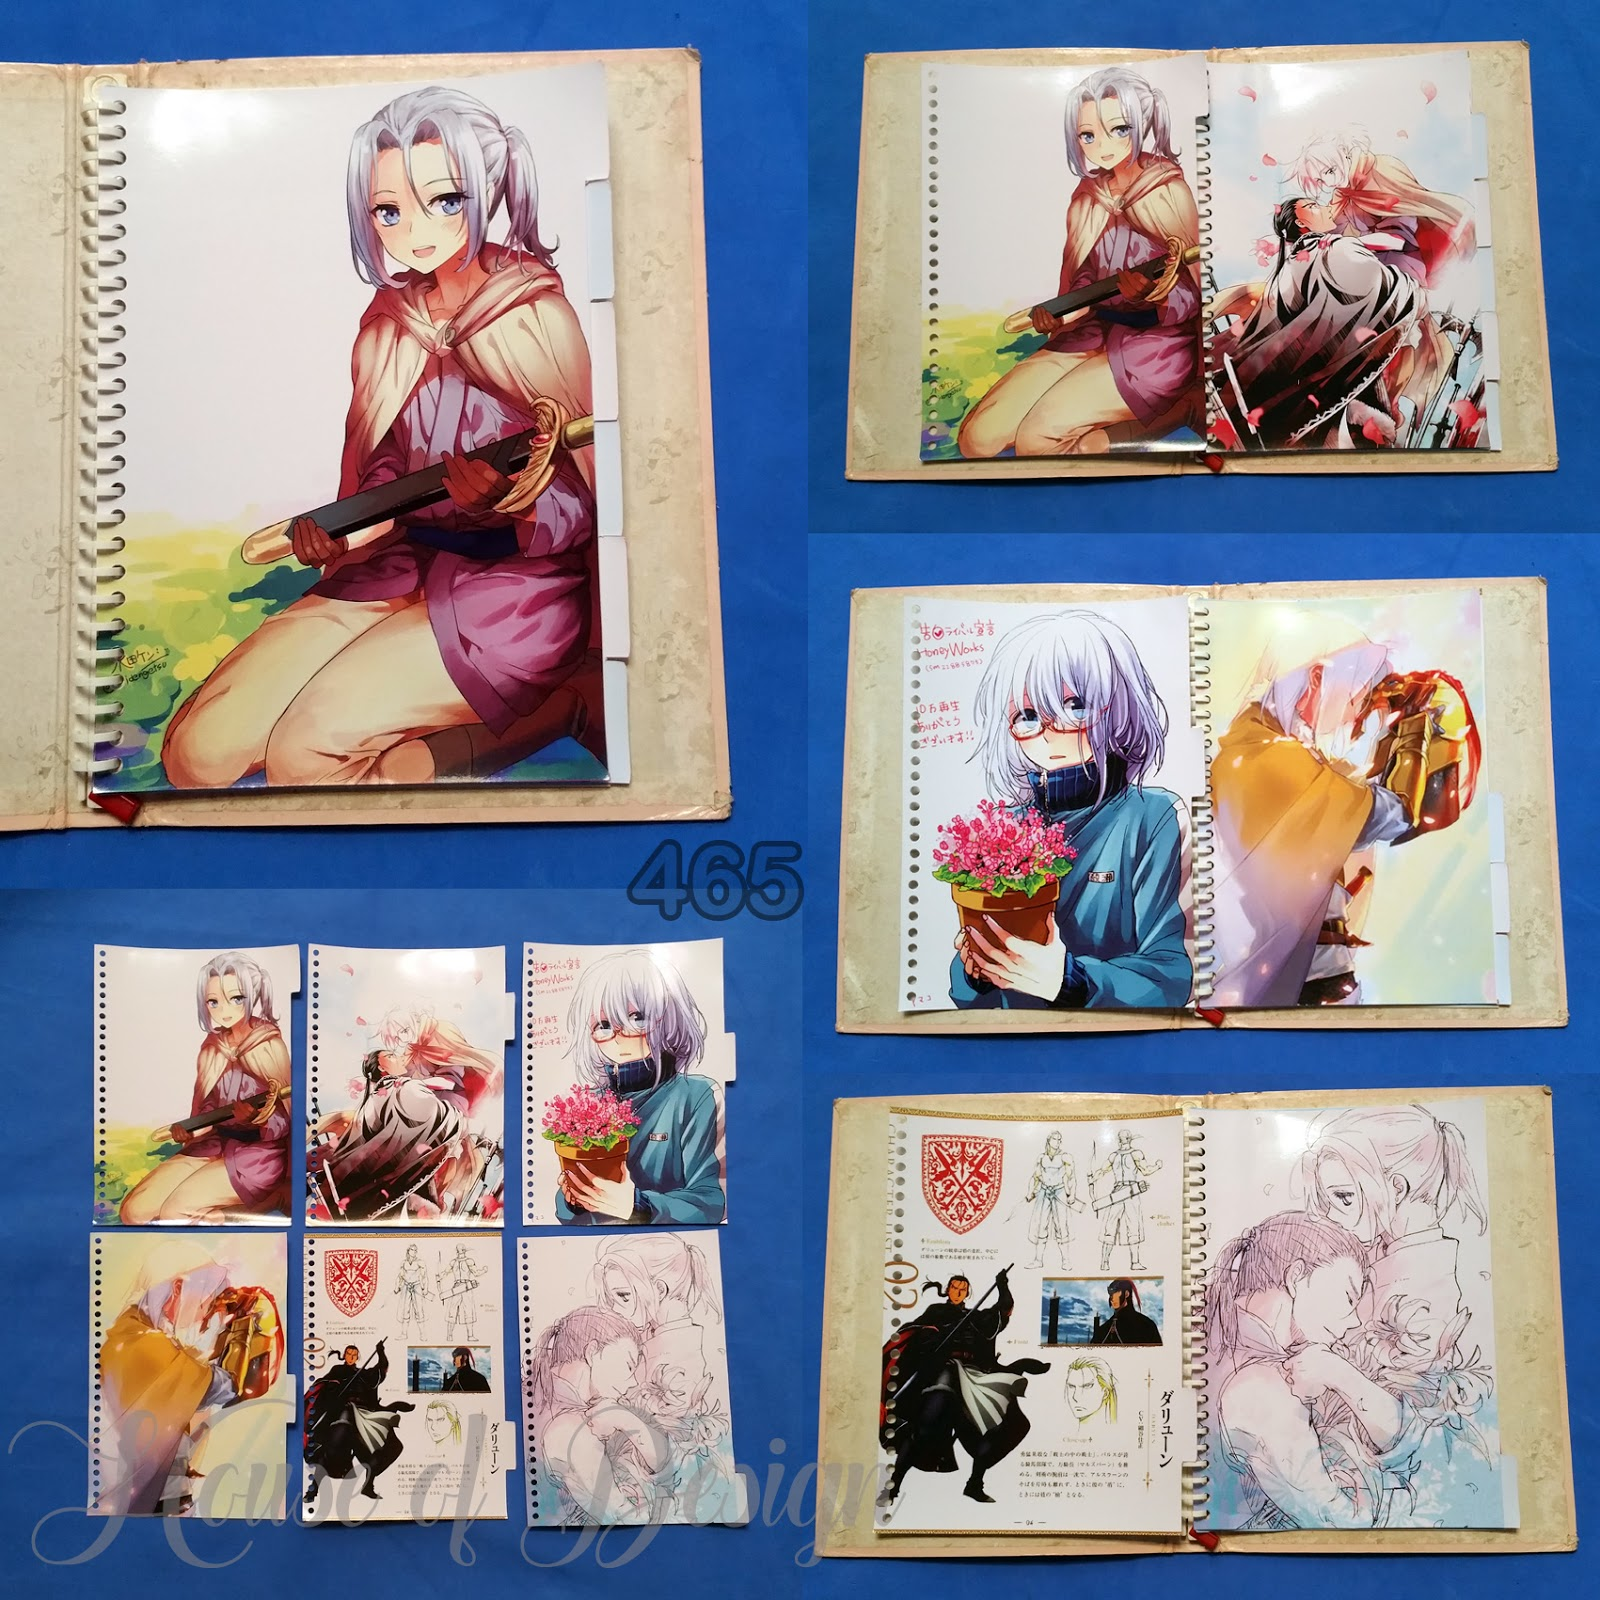 PEMBATAS BINDER SAMPING 26 RING UKURAN B5 ANIME CUSTOM